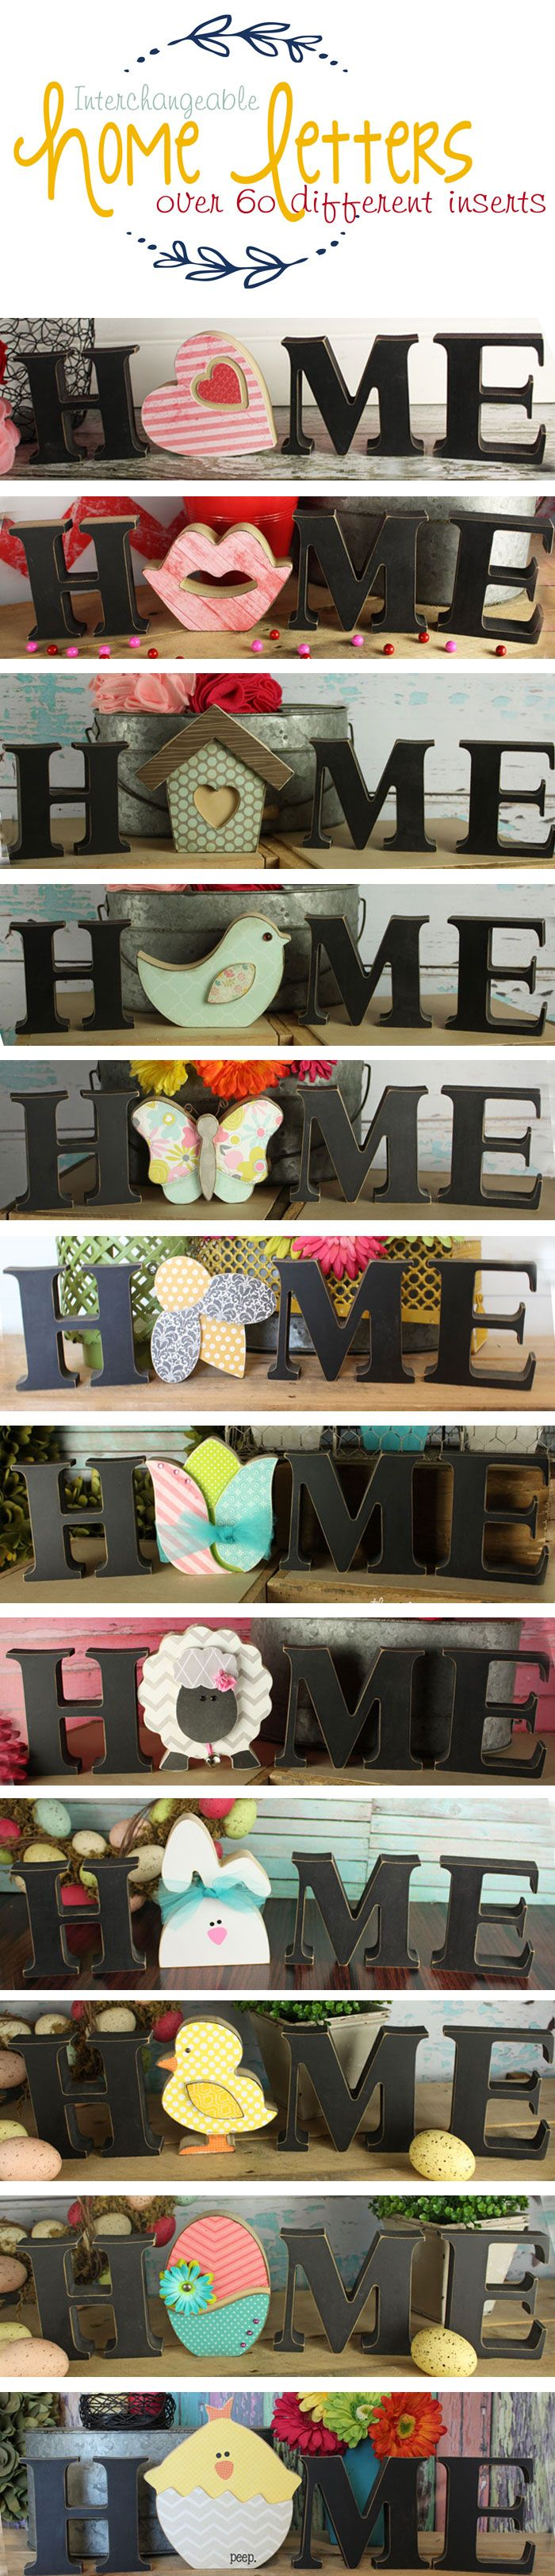 """Interchangeable HOME letter crafts. Pick from over 60 different inserts for the letter """"o"""". Swap out the insert for every holiday/season. So cute!!"""